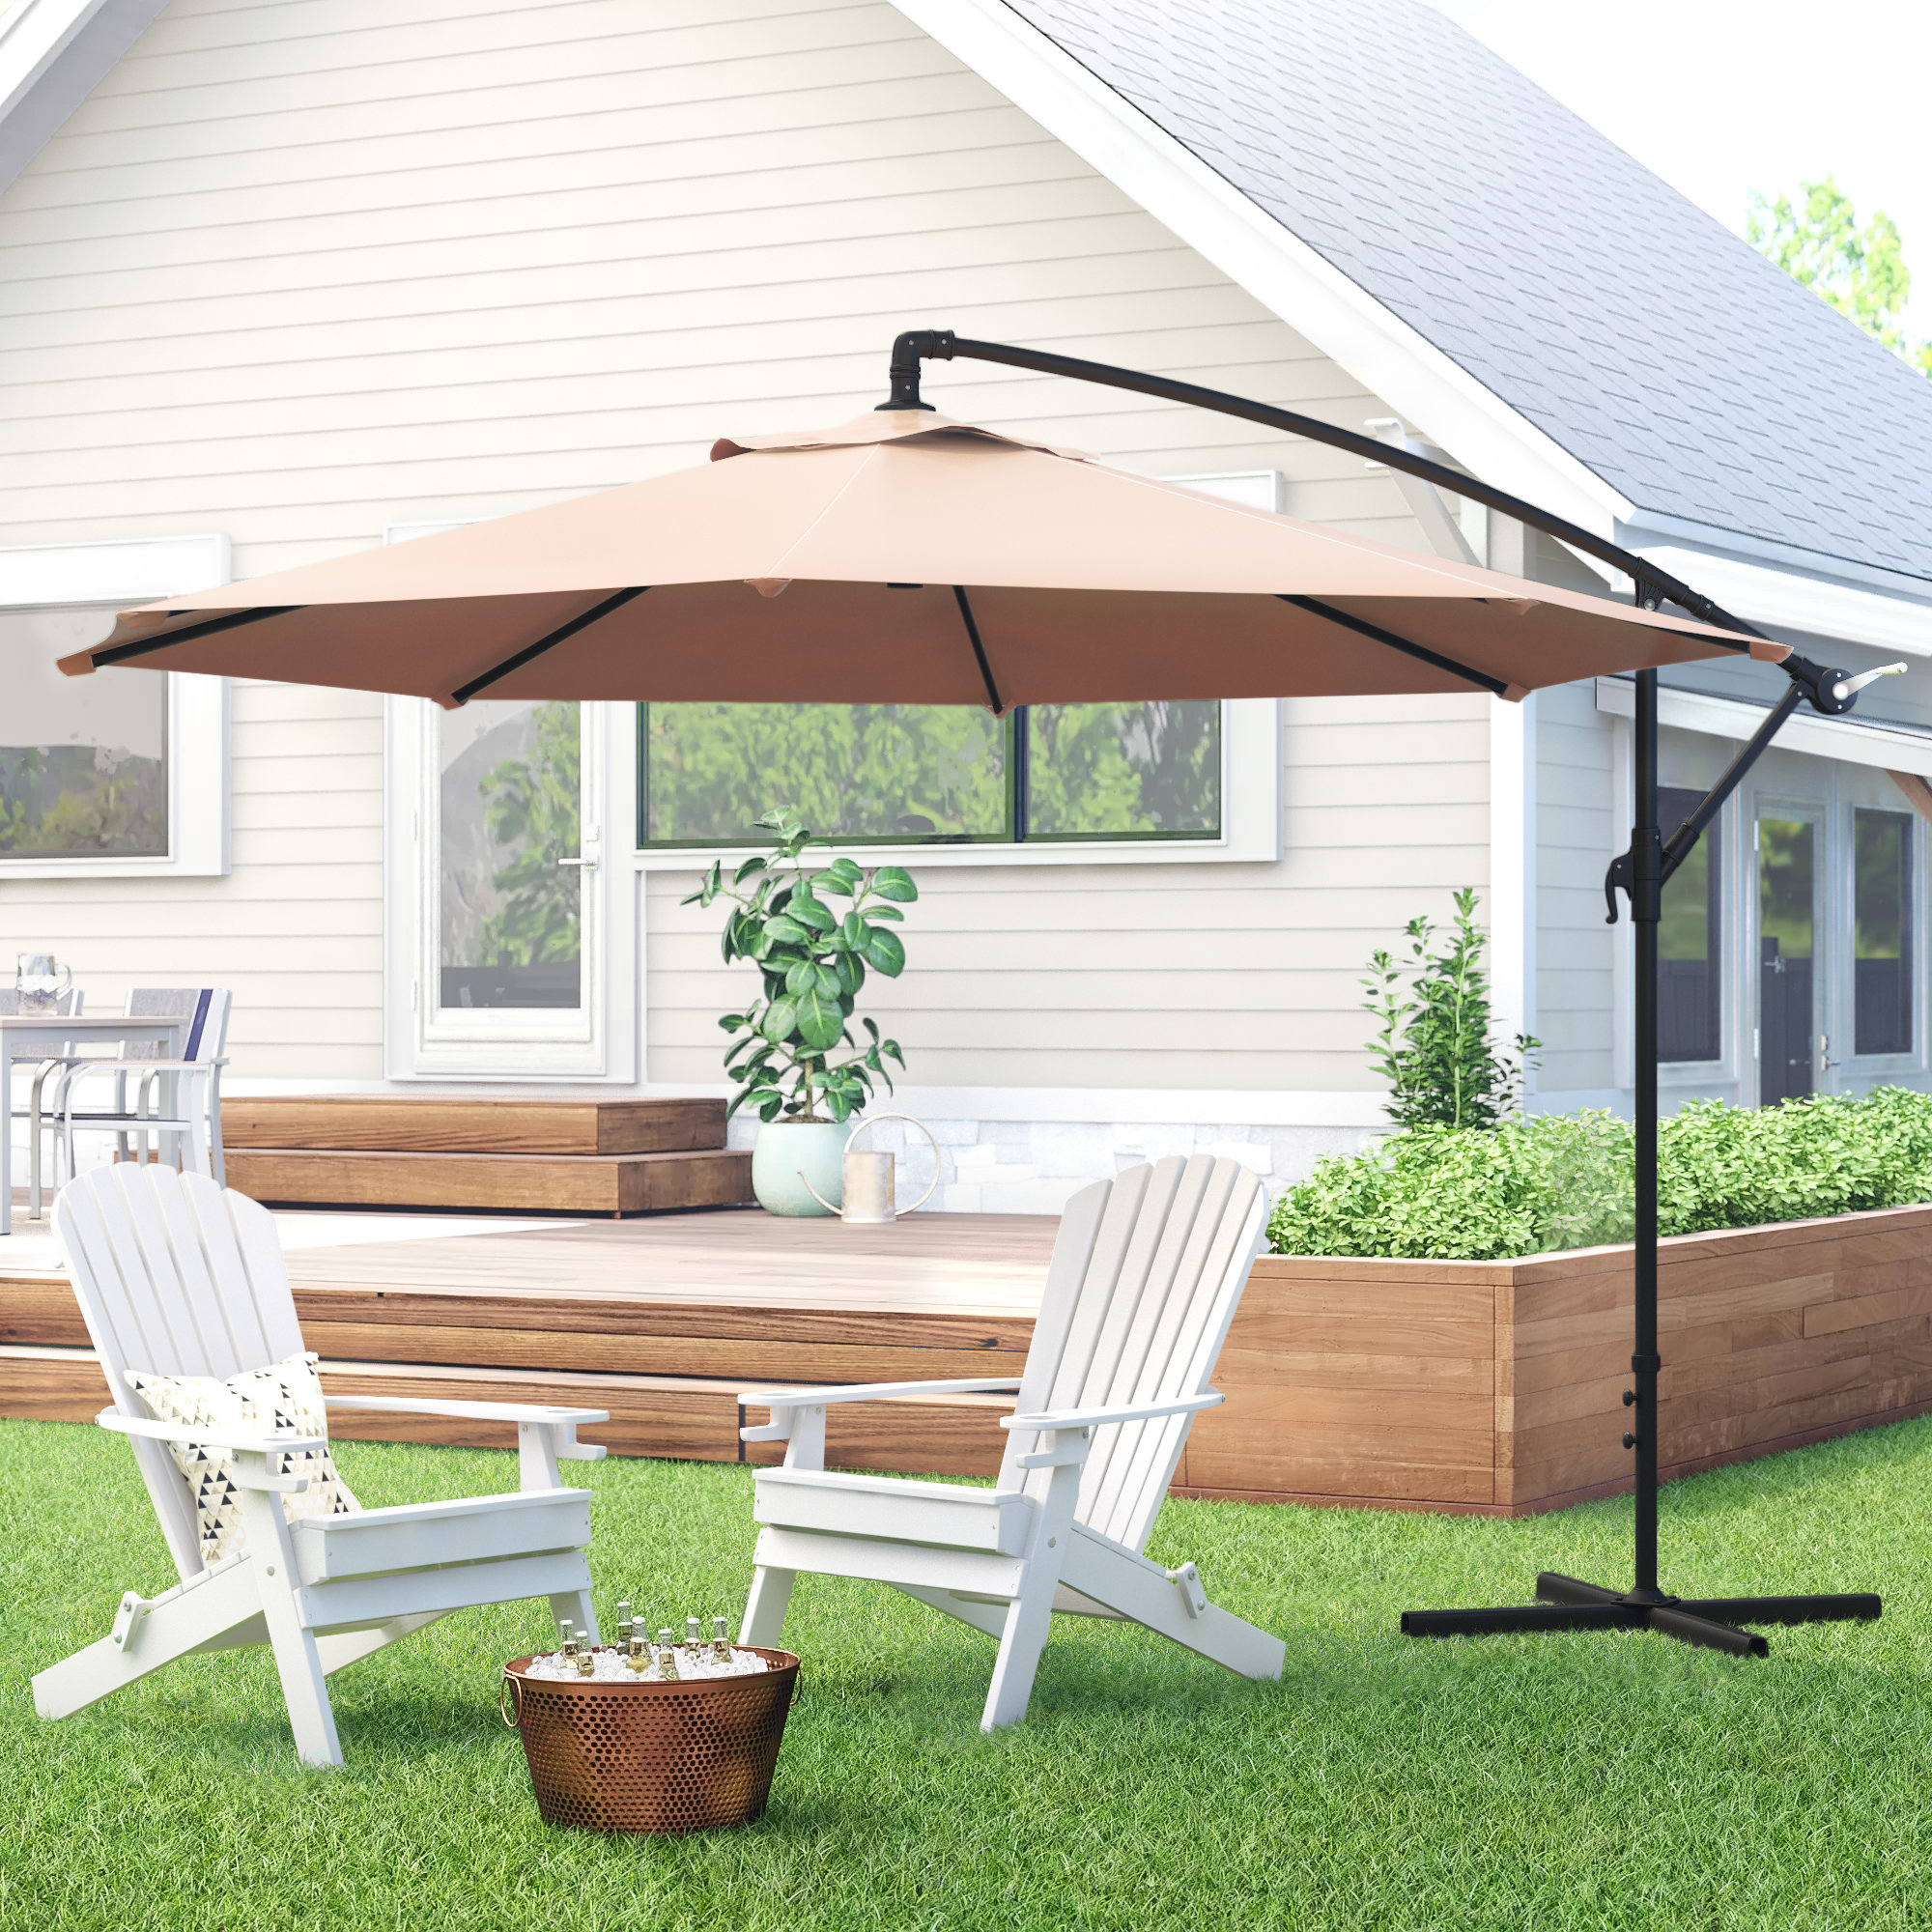 Fashionable Booneville Cantilever Umbrellas Intended For Driskill Hanging Patio 10' Cantilever Umbrella (View 3 of 20)